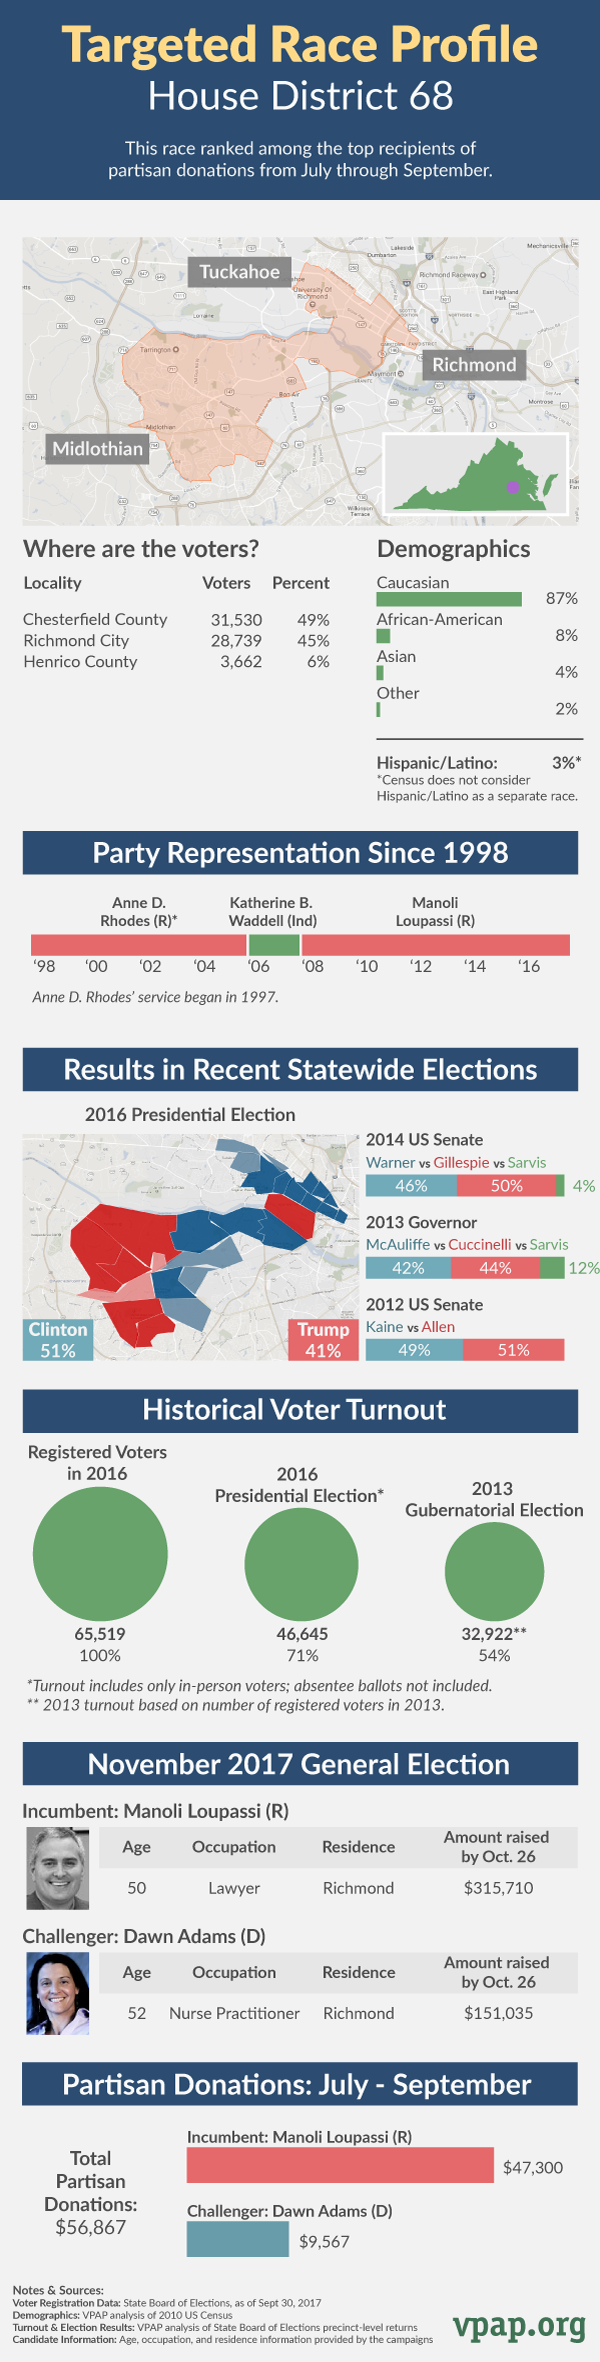 Targeted Race Profile: House District 68